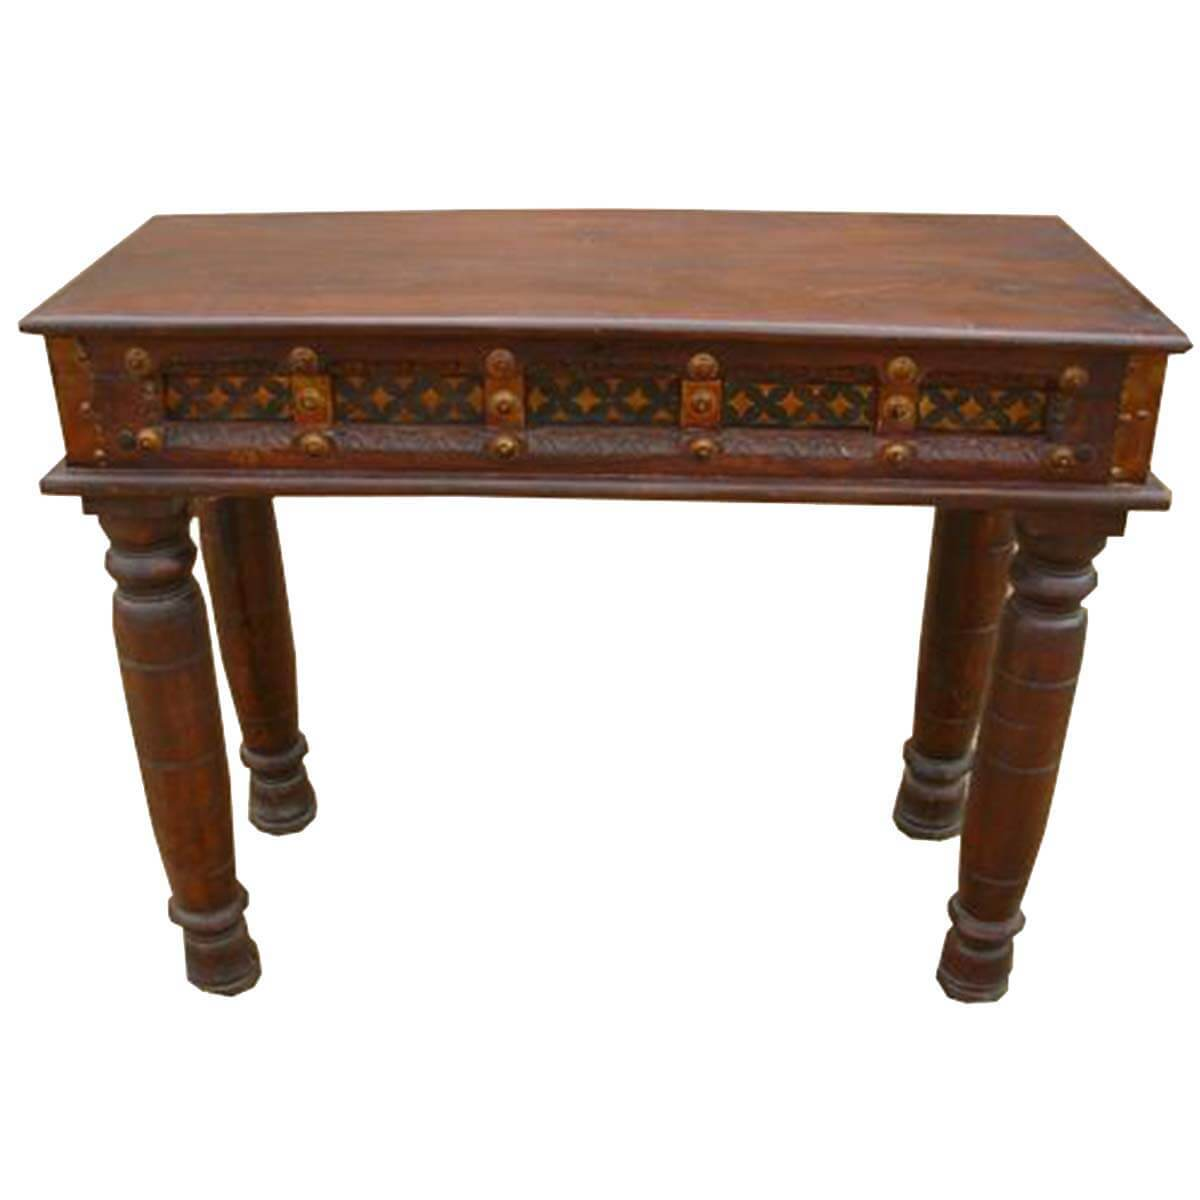 Carved wood brass acent entry hall foyer console table for Hall console table